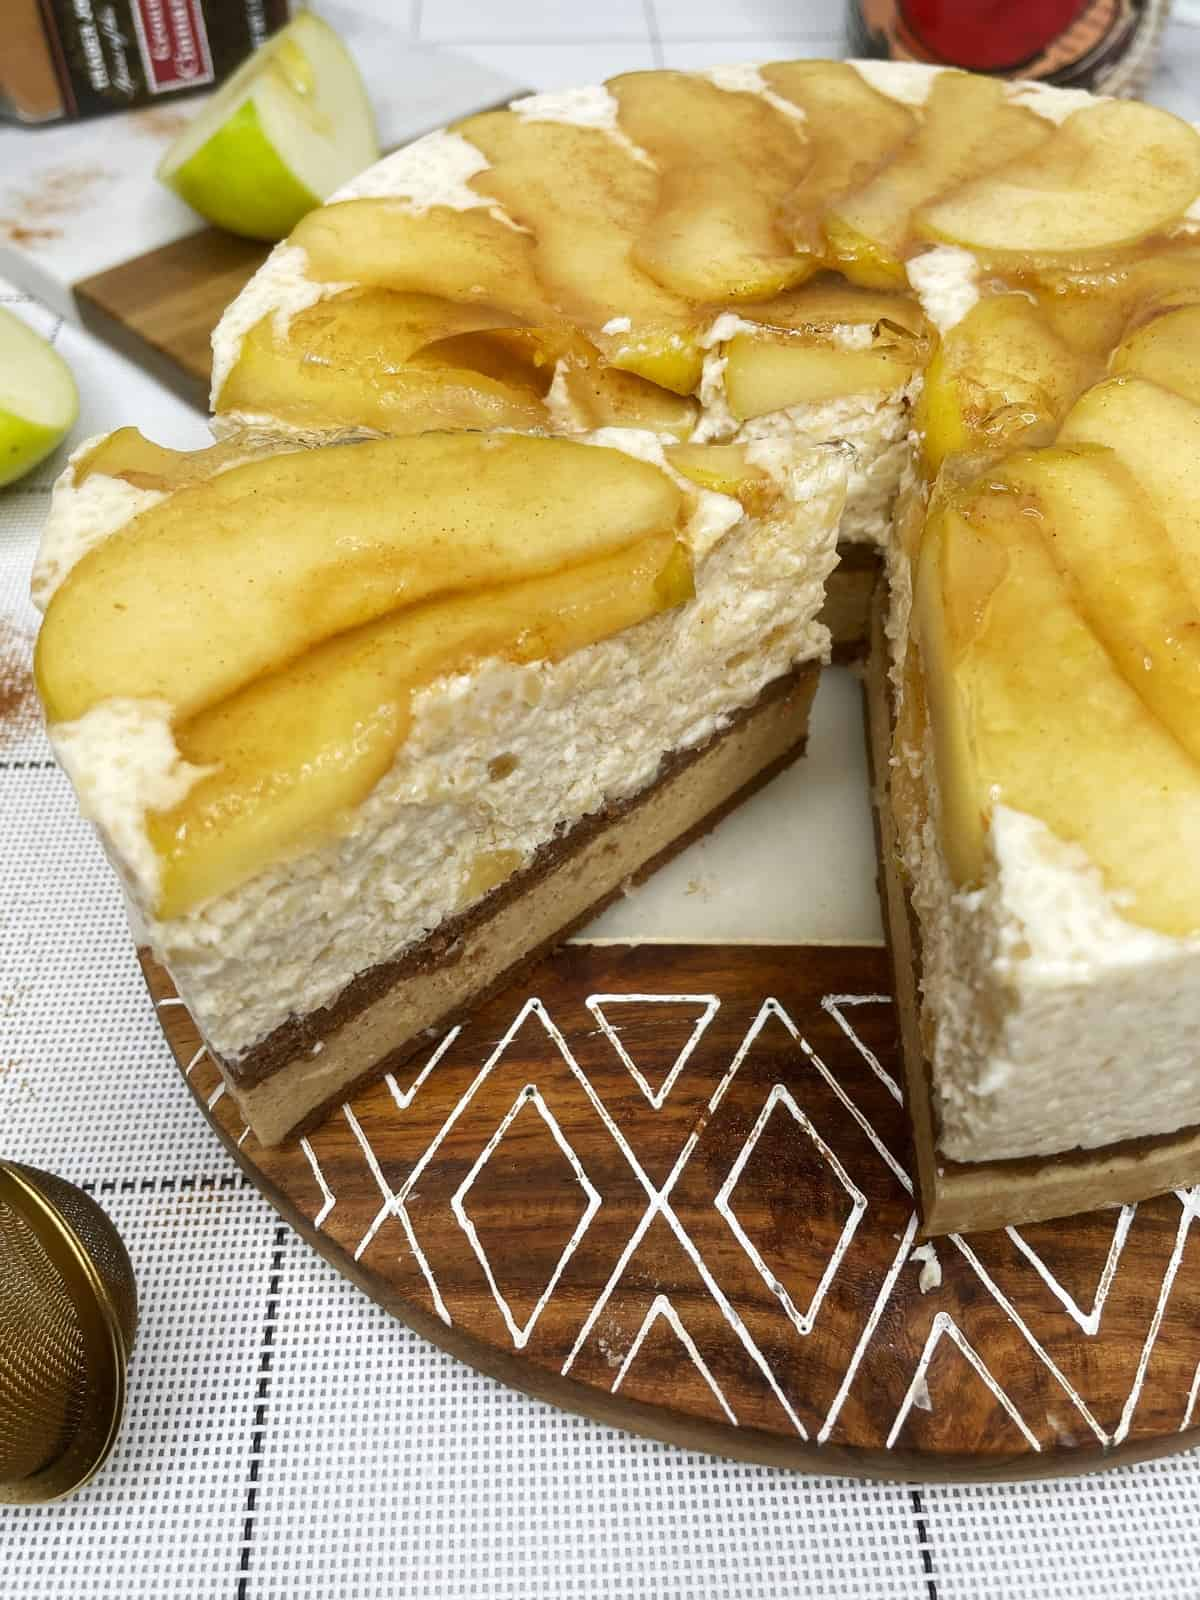 Sliced apple cake featuring caramelized apples on top of the mousse and a chocolate biscuit